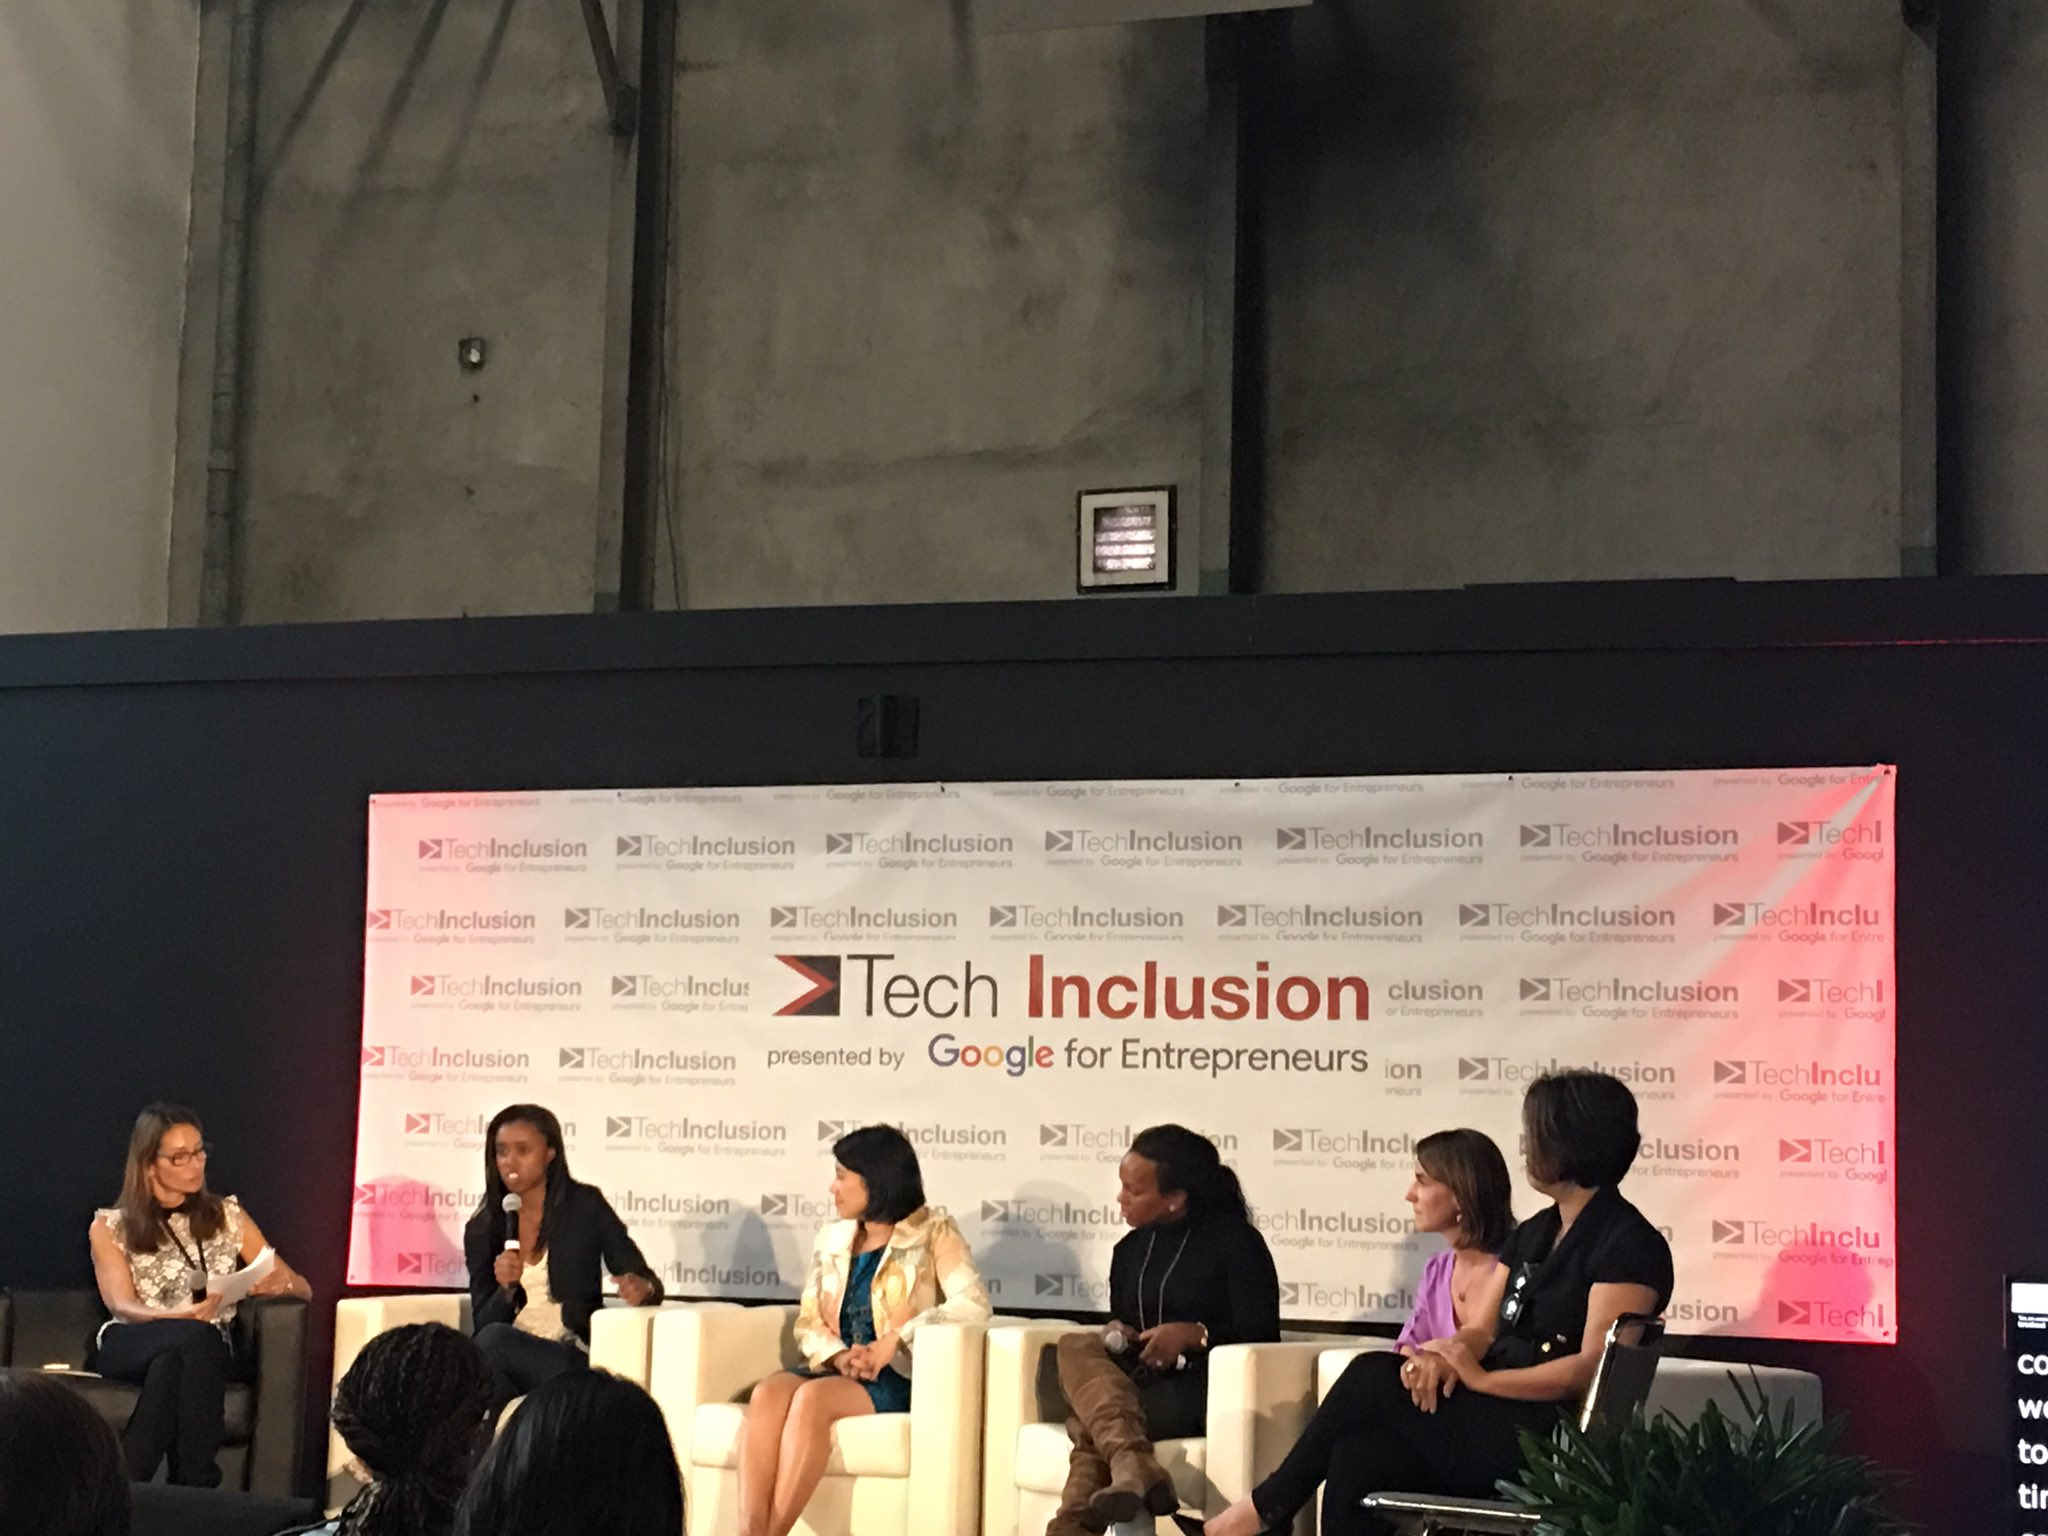 Great words of wisdom from an exciting panel of female founders at #TechInclusion16 #womenintech https://t.co/VX7OnKSLeG